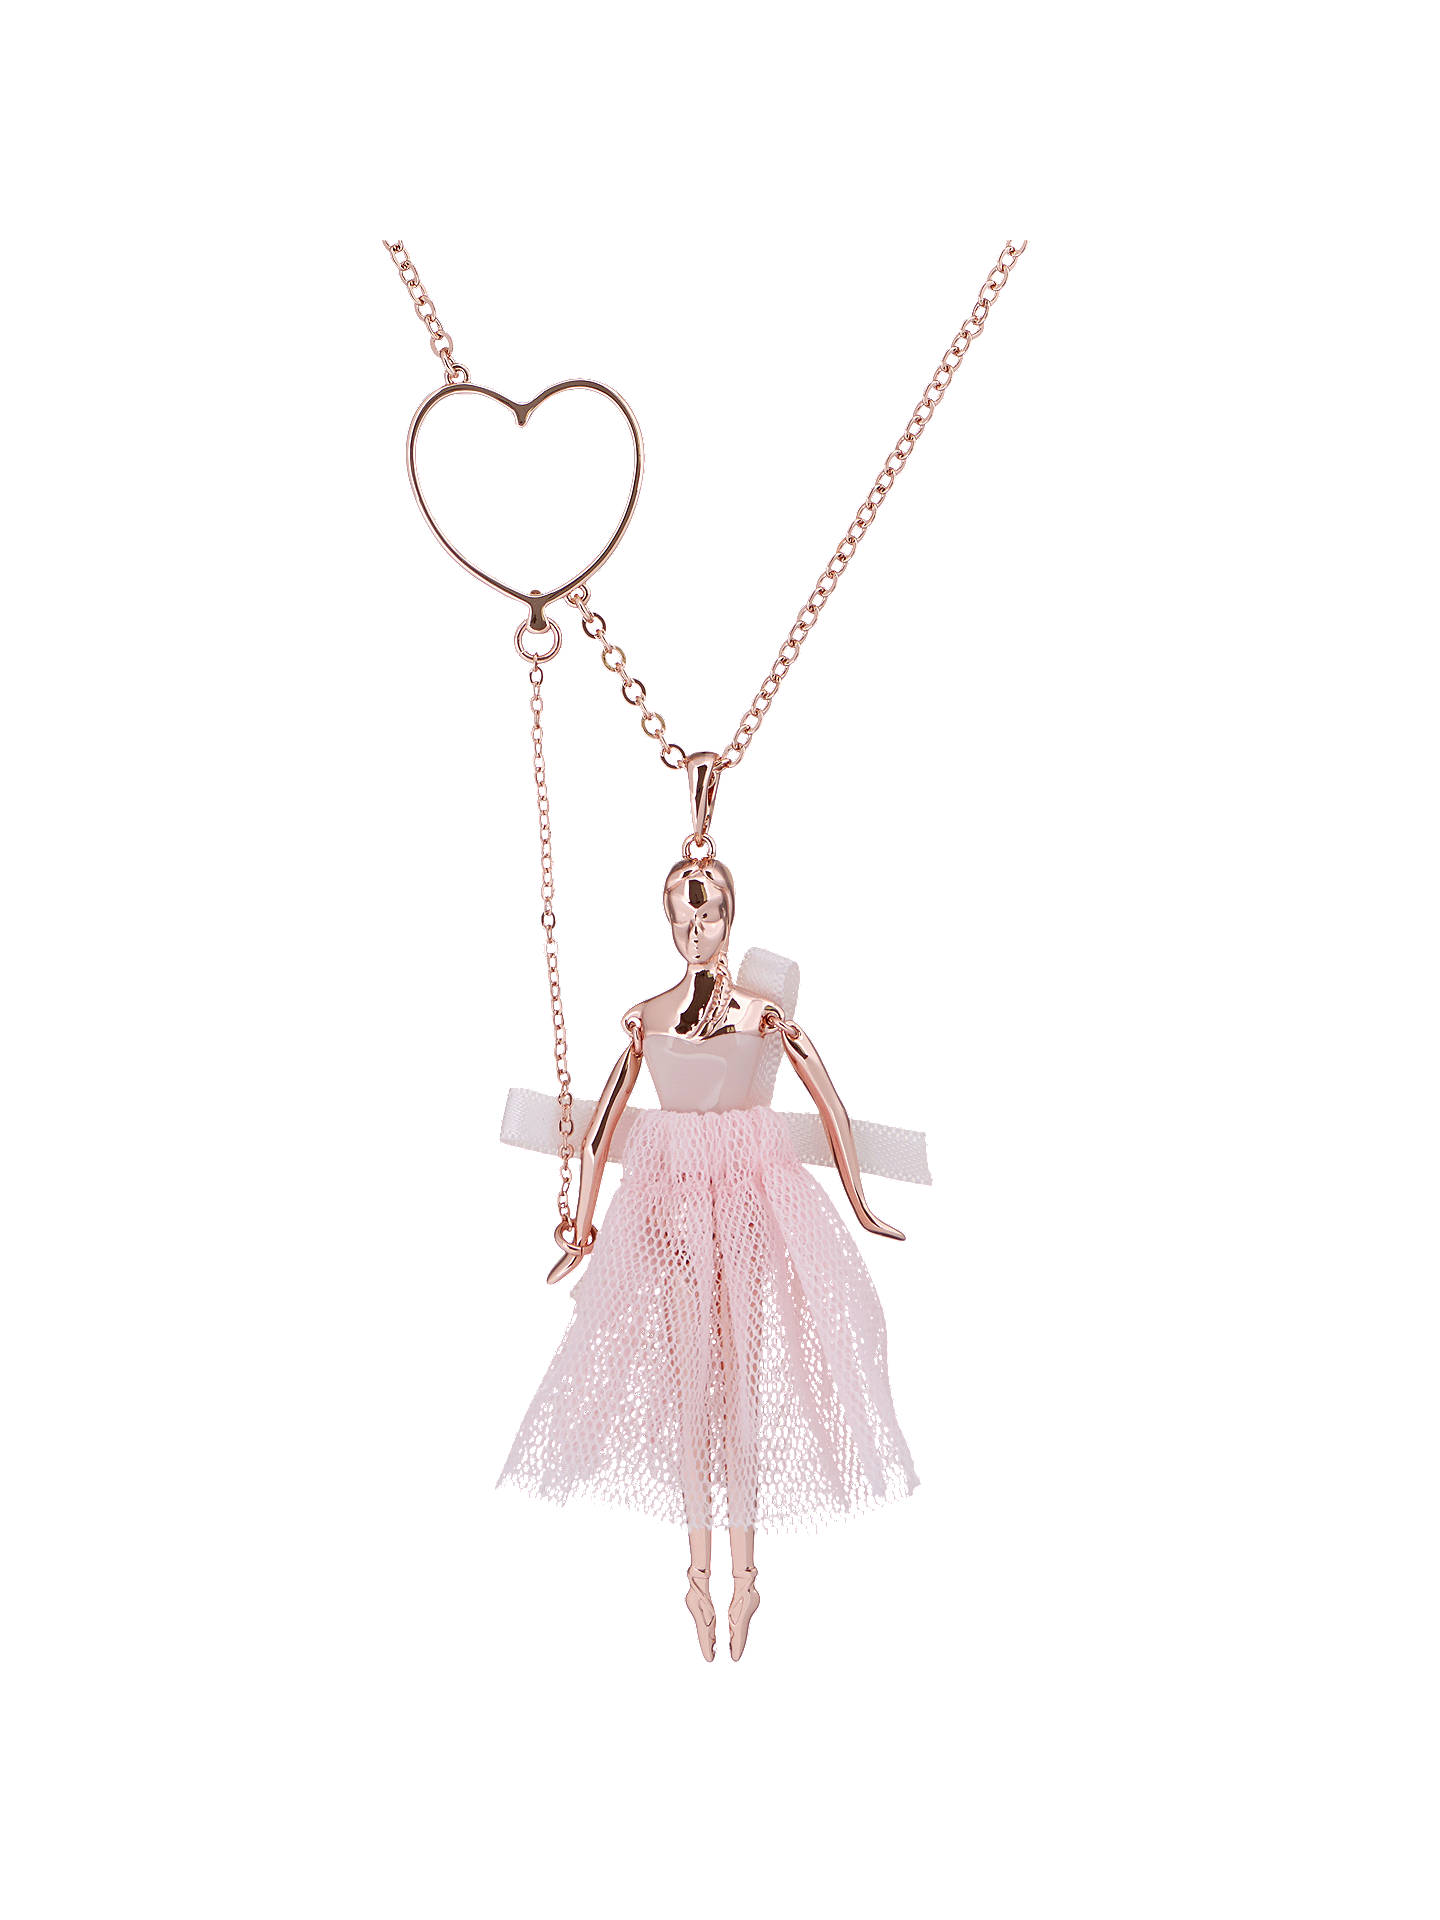 Ted baker bevlee balloon ballerina pendant necklace rose gold at buyted baker bevlee balloon ballerina pendant necklace rose gold online at johnlewis aloadofball Images